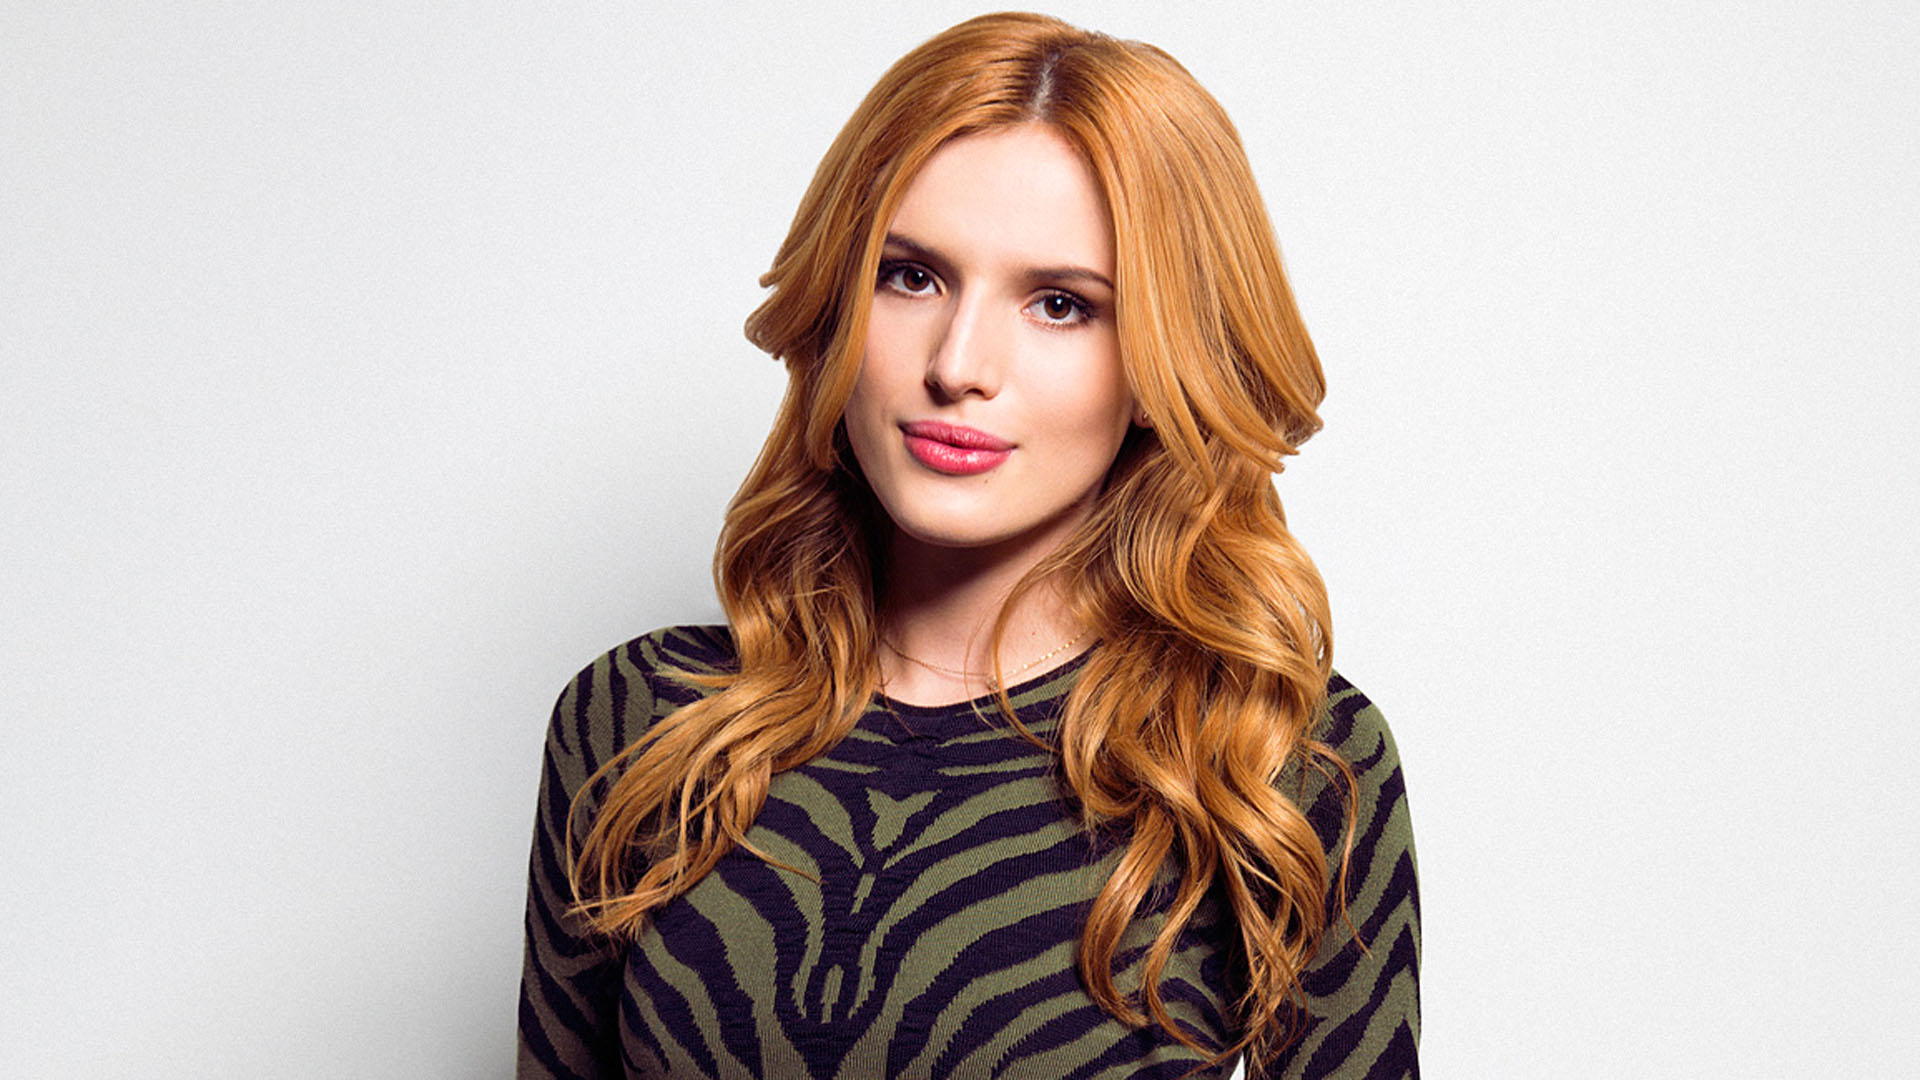 Great bella thorne wallpaper full hd pictures - Bella thorne wallpaper ...